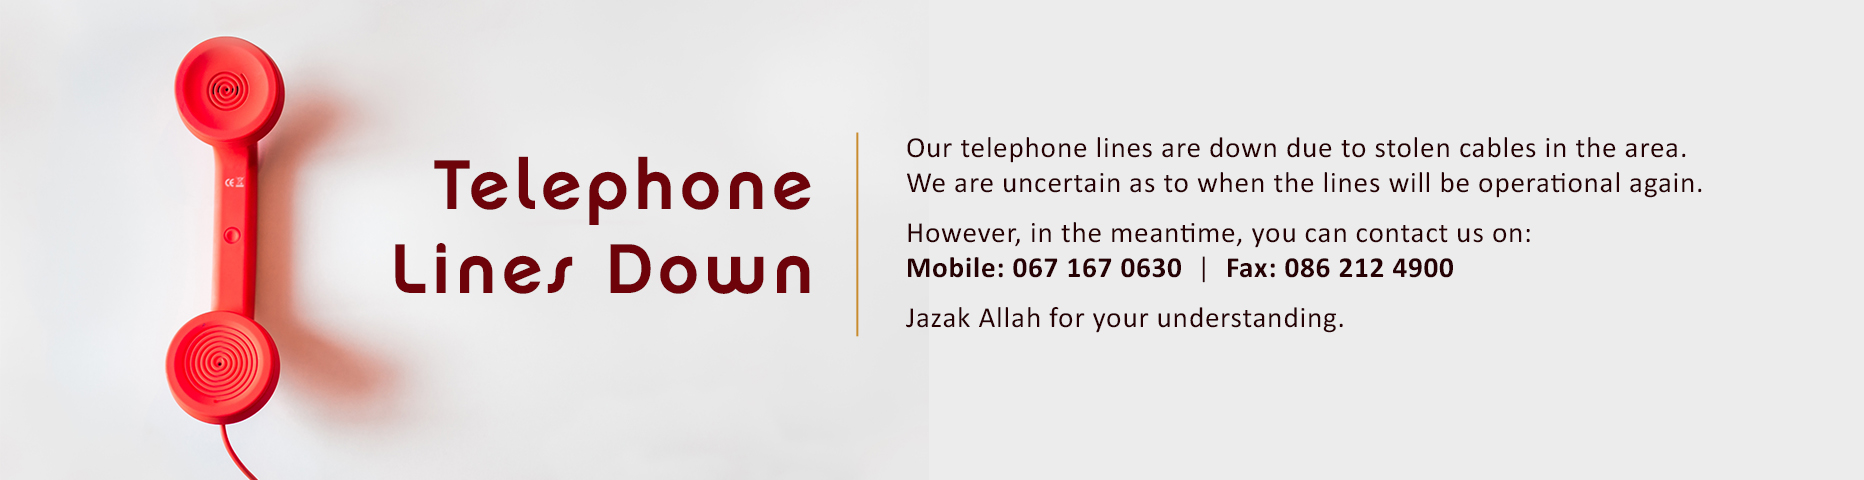 Telephone_lines_down